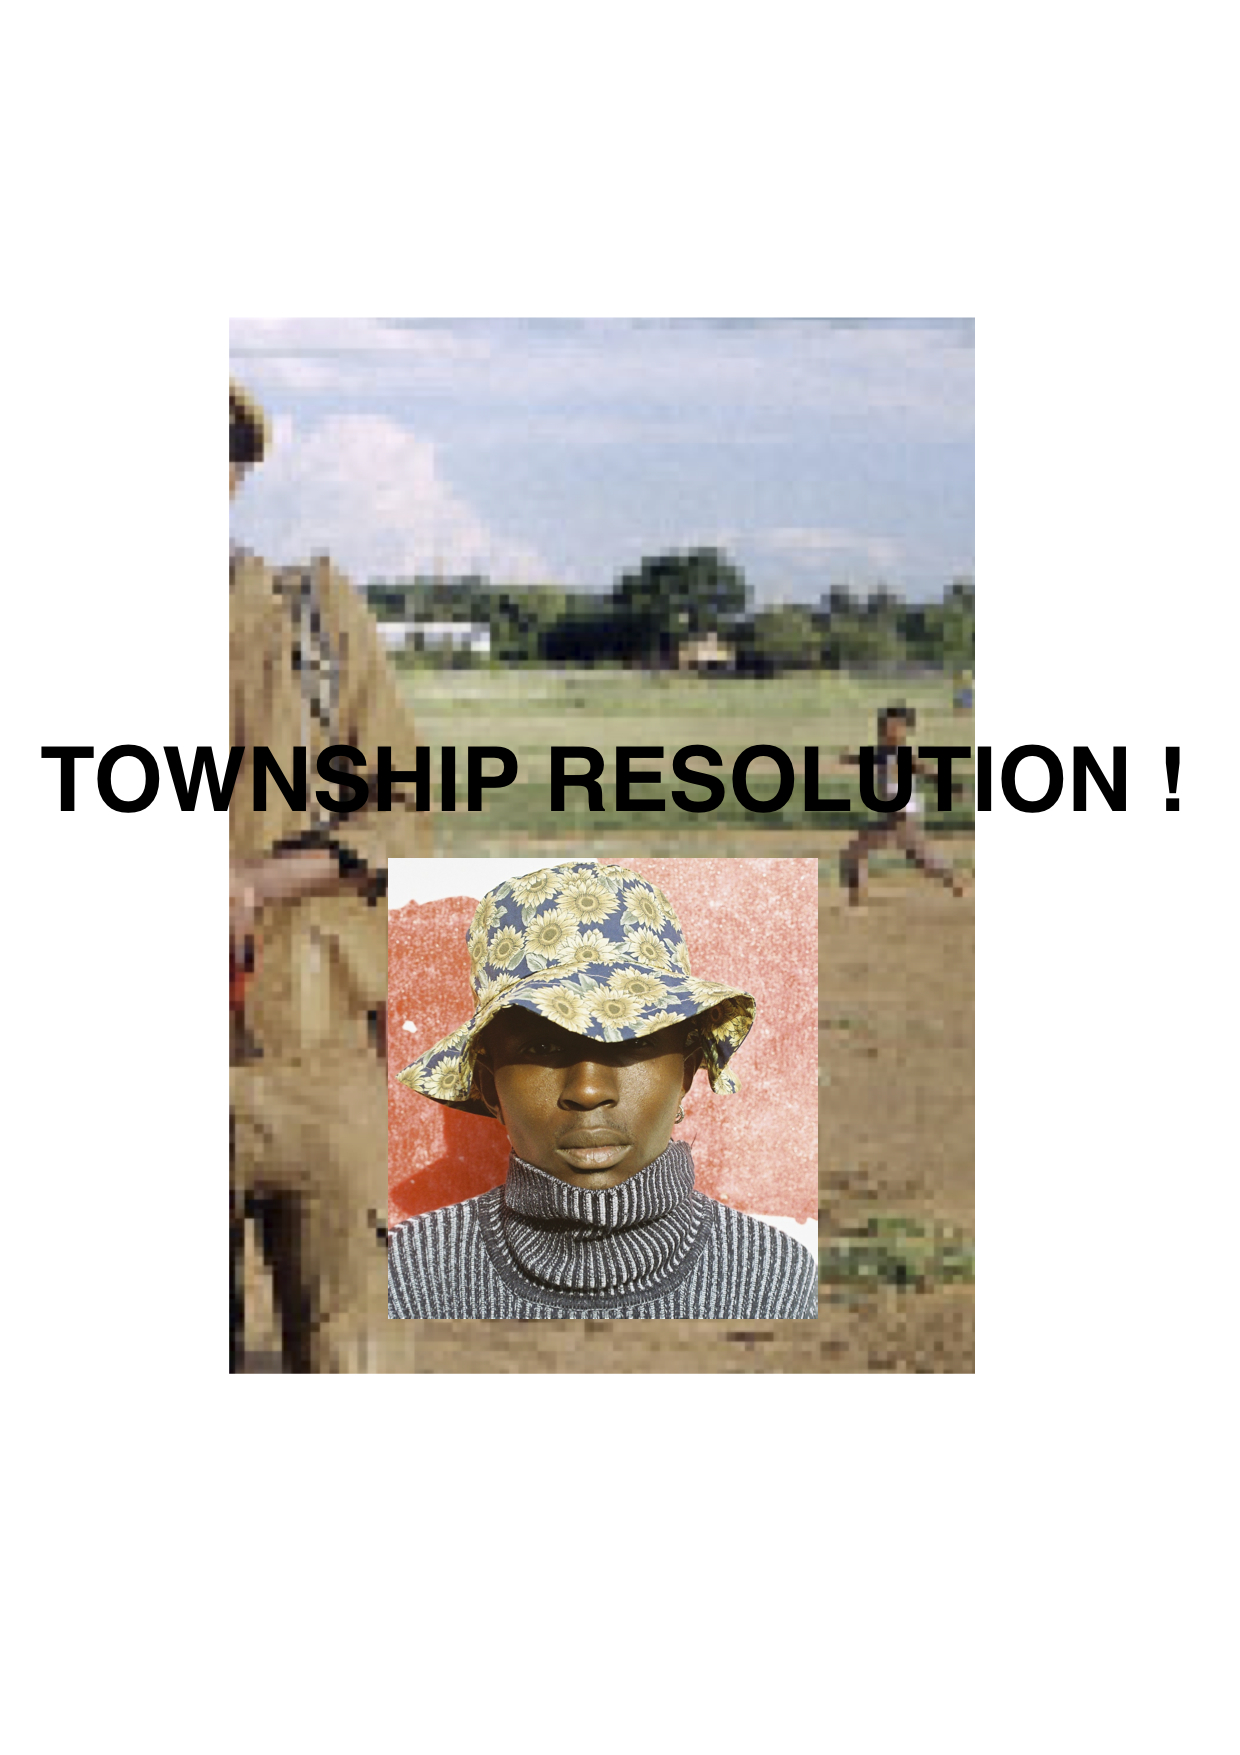 Township Resolution By Gracie Wales Bonner 1 Granary